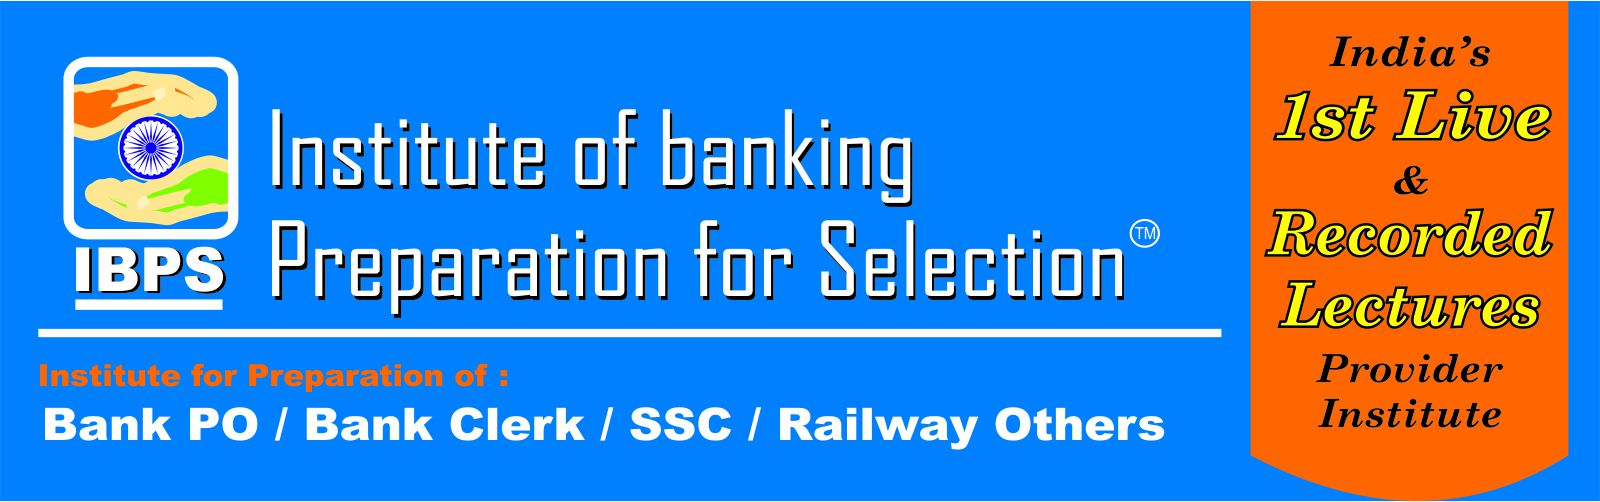 admin/photos/Institute of Banking Preparation for Selection